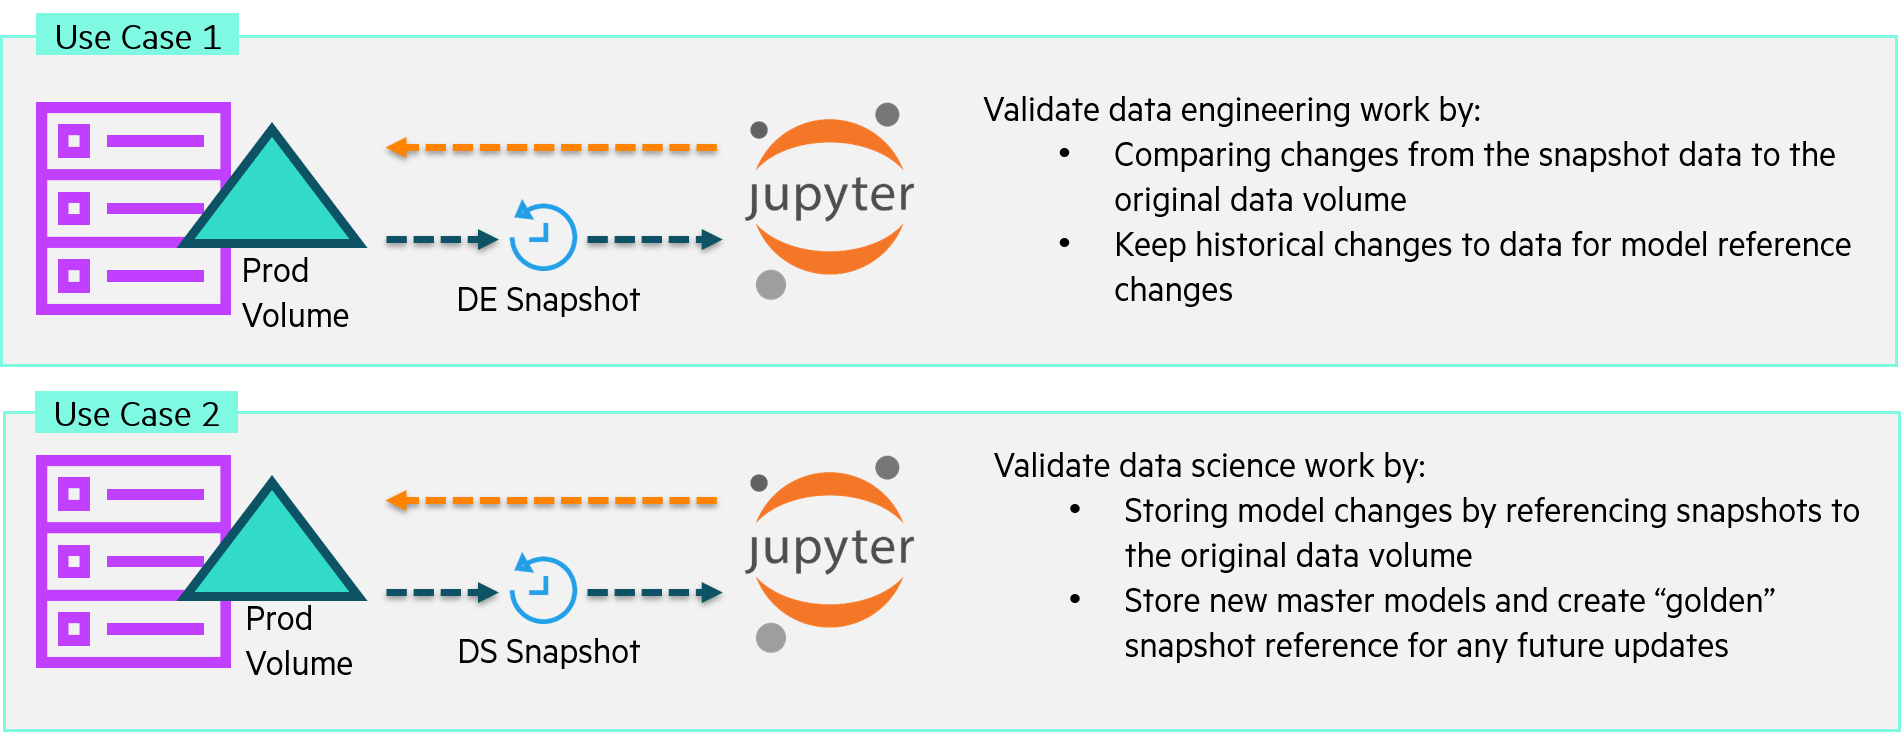 Figure 3 Engineering and data science use cases